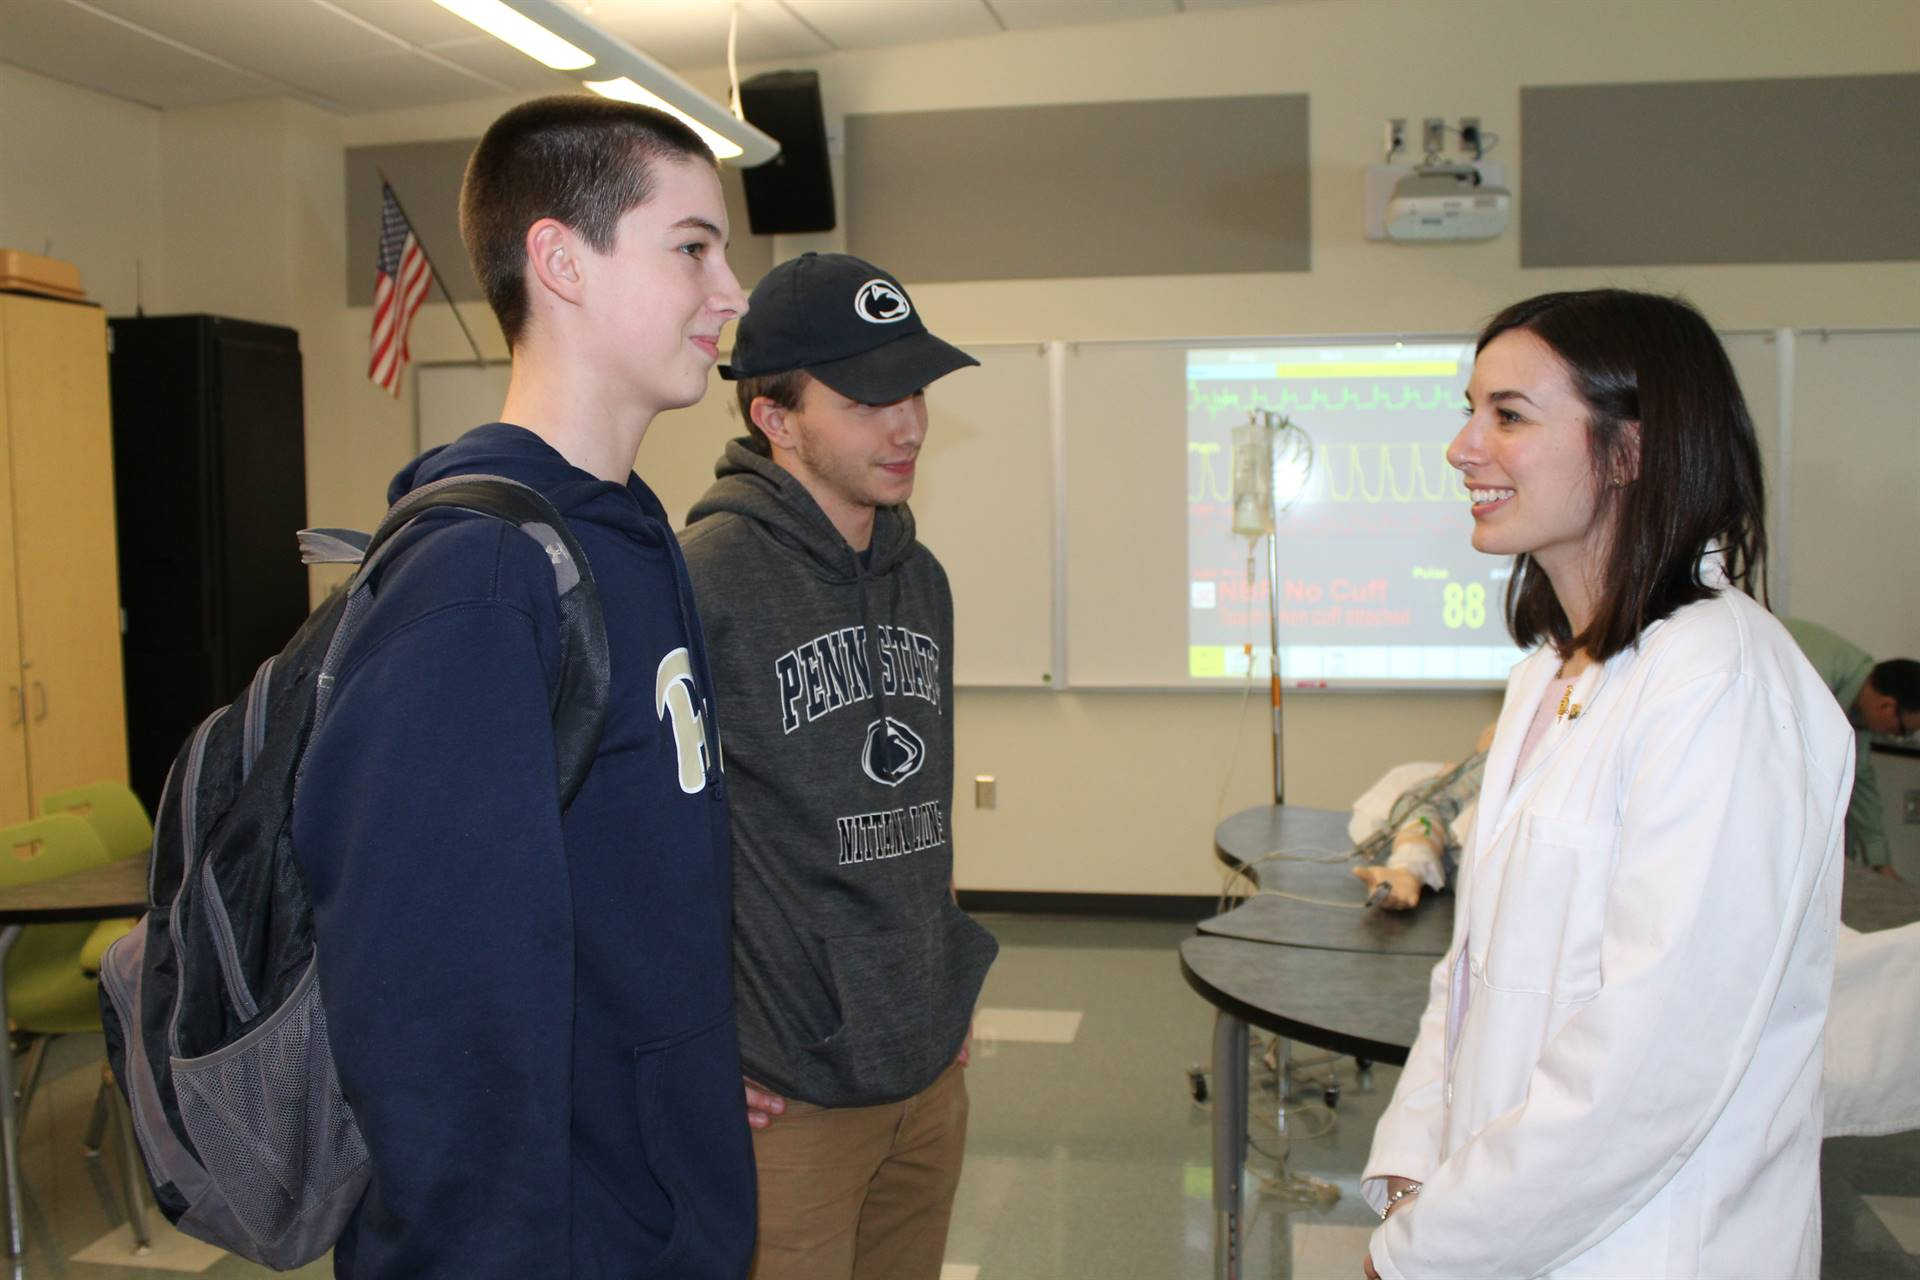 Two BPHS students talking to a Pitt Pharmacy student